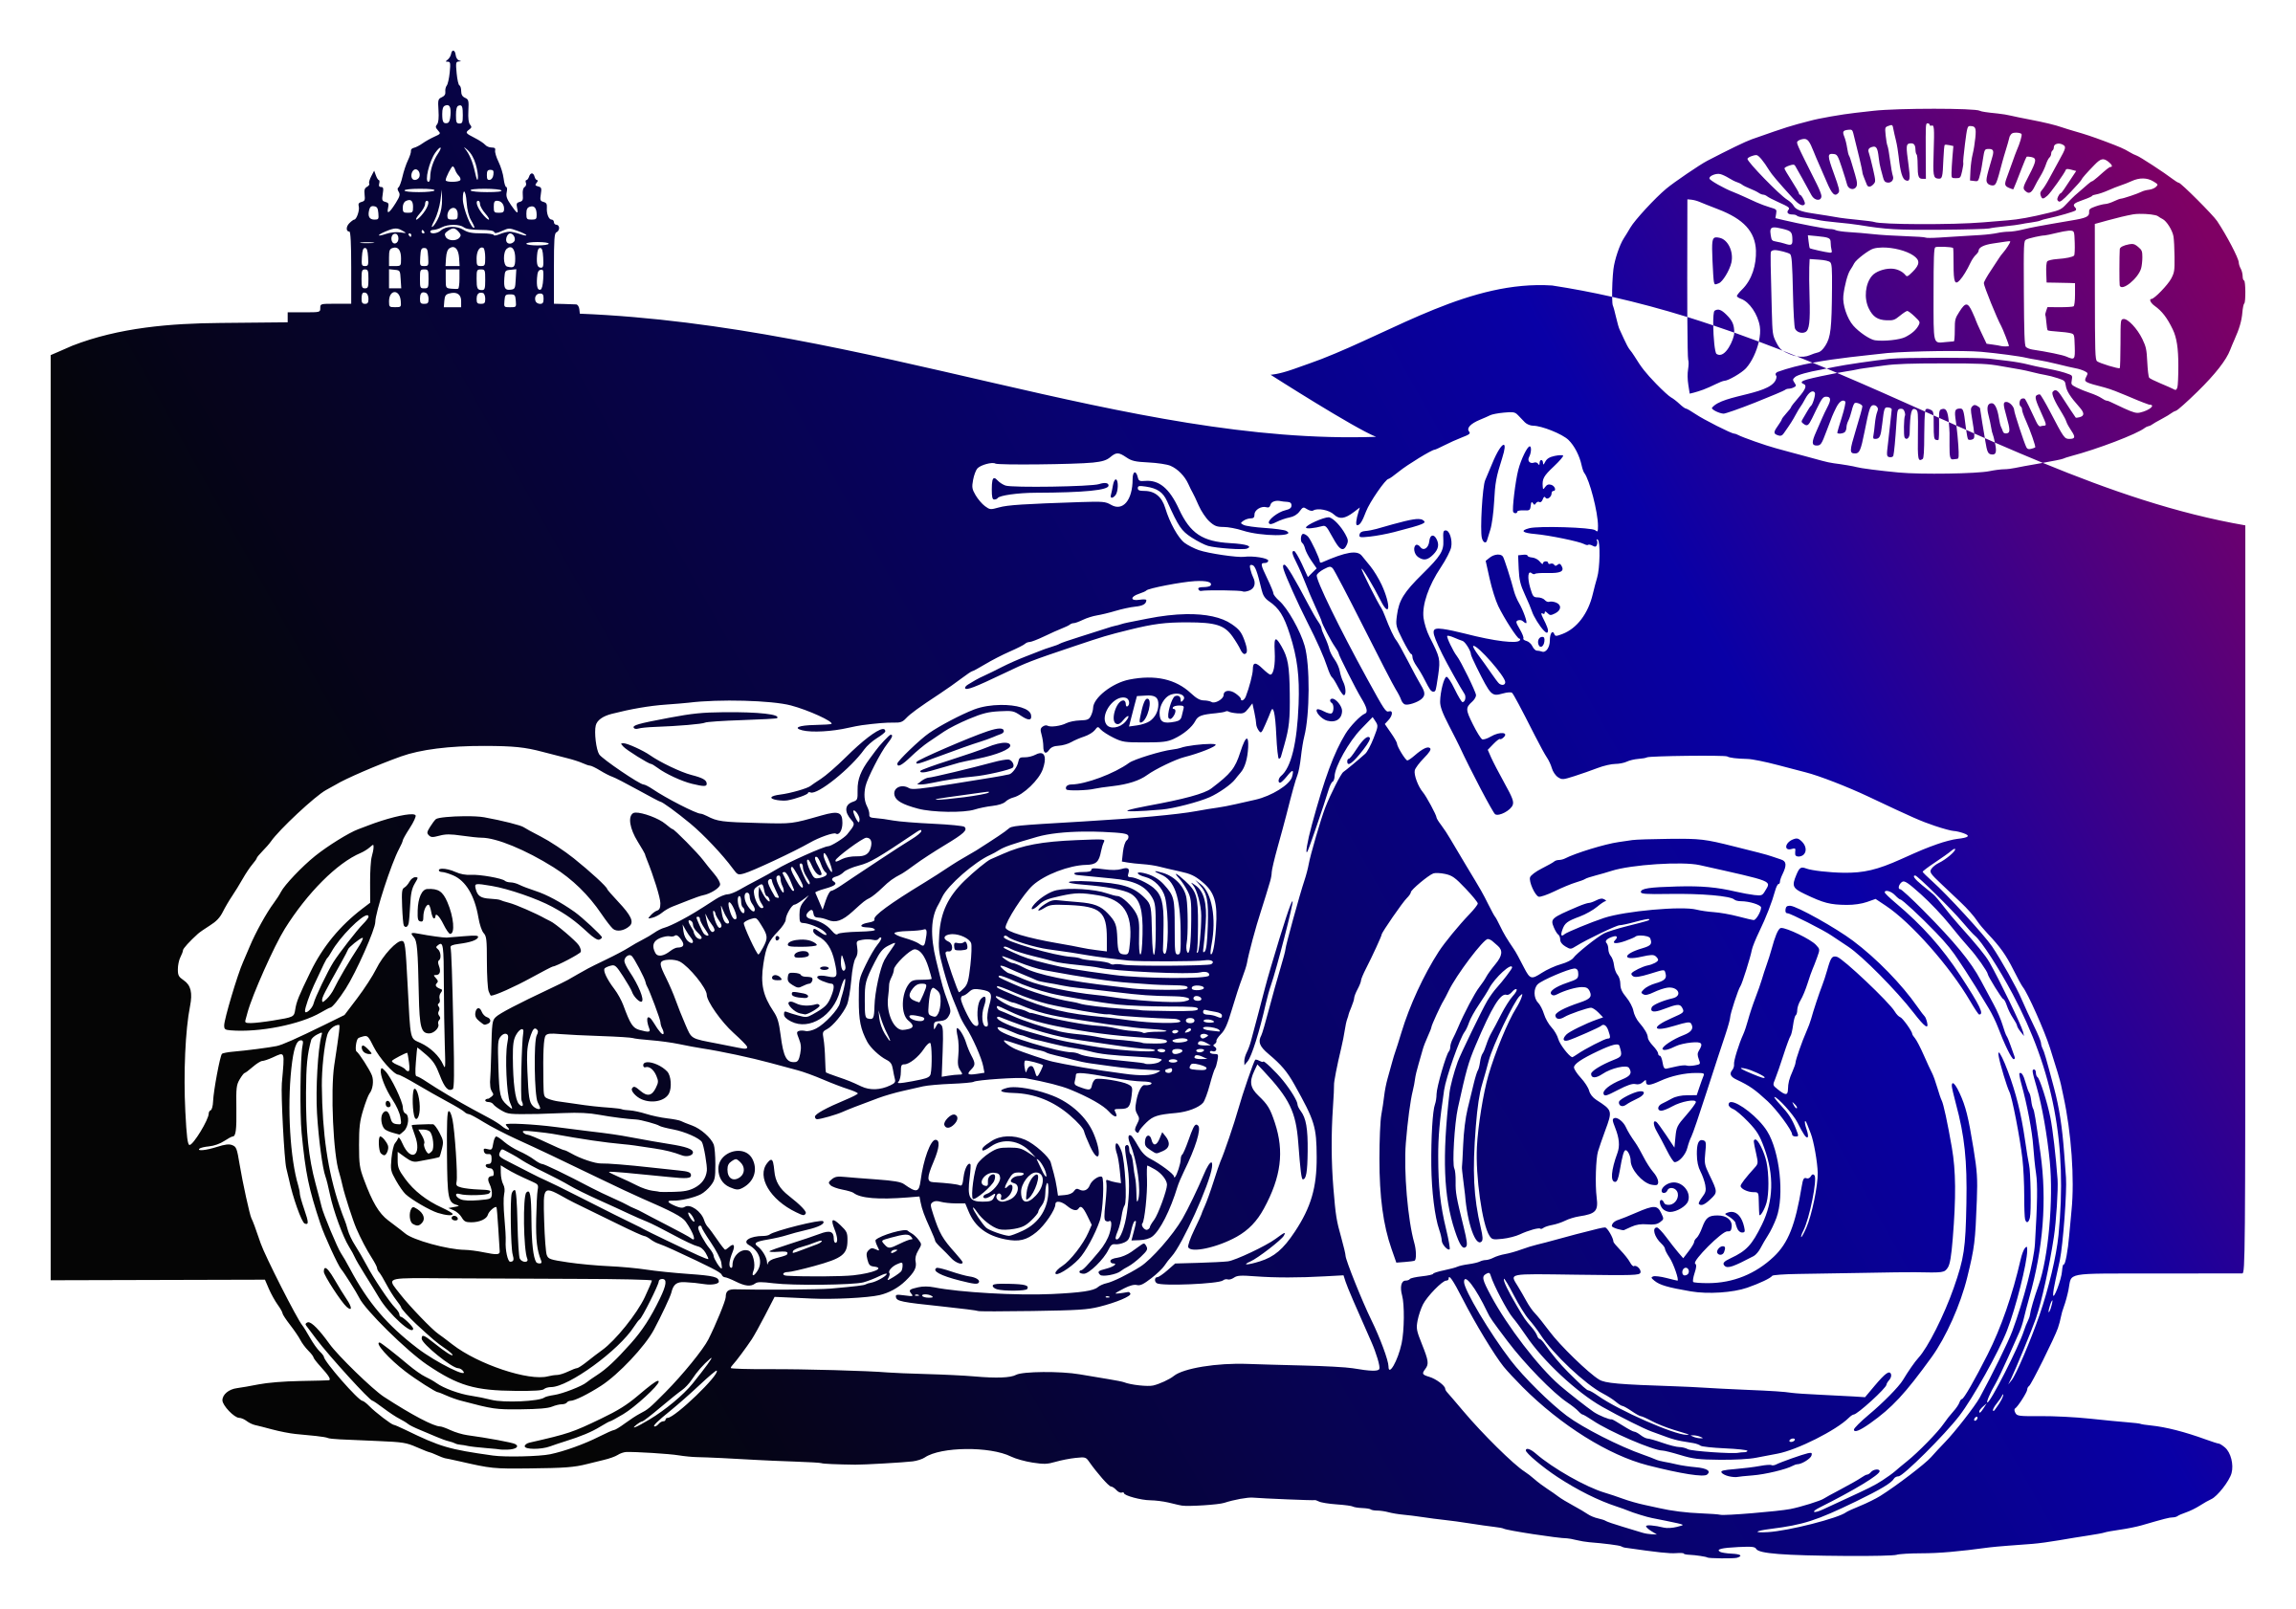 Motorbike big image png. Clipart car motorcycle